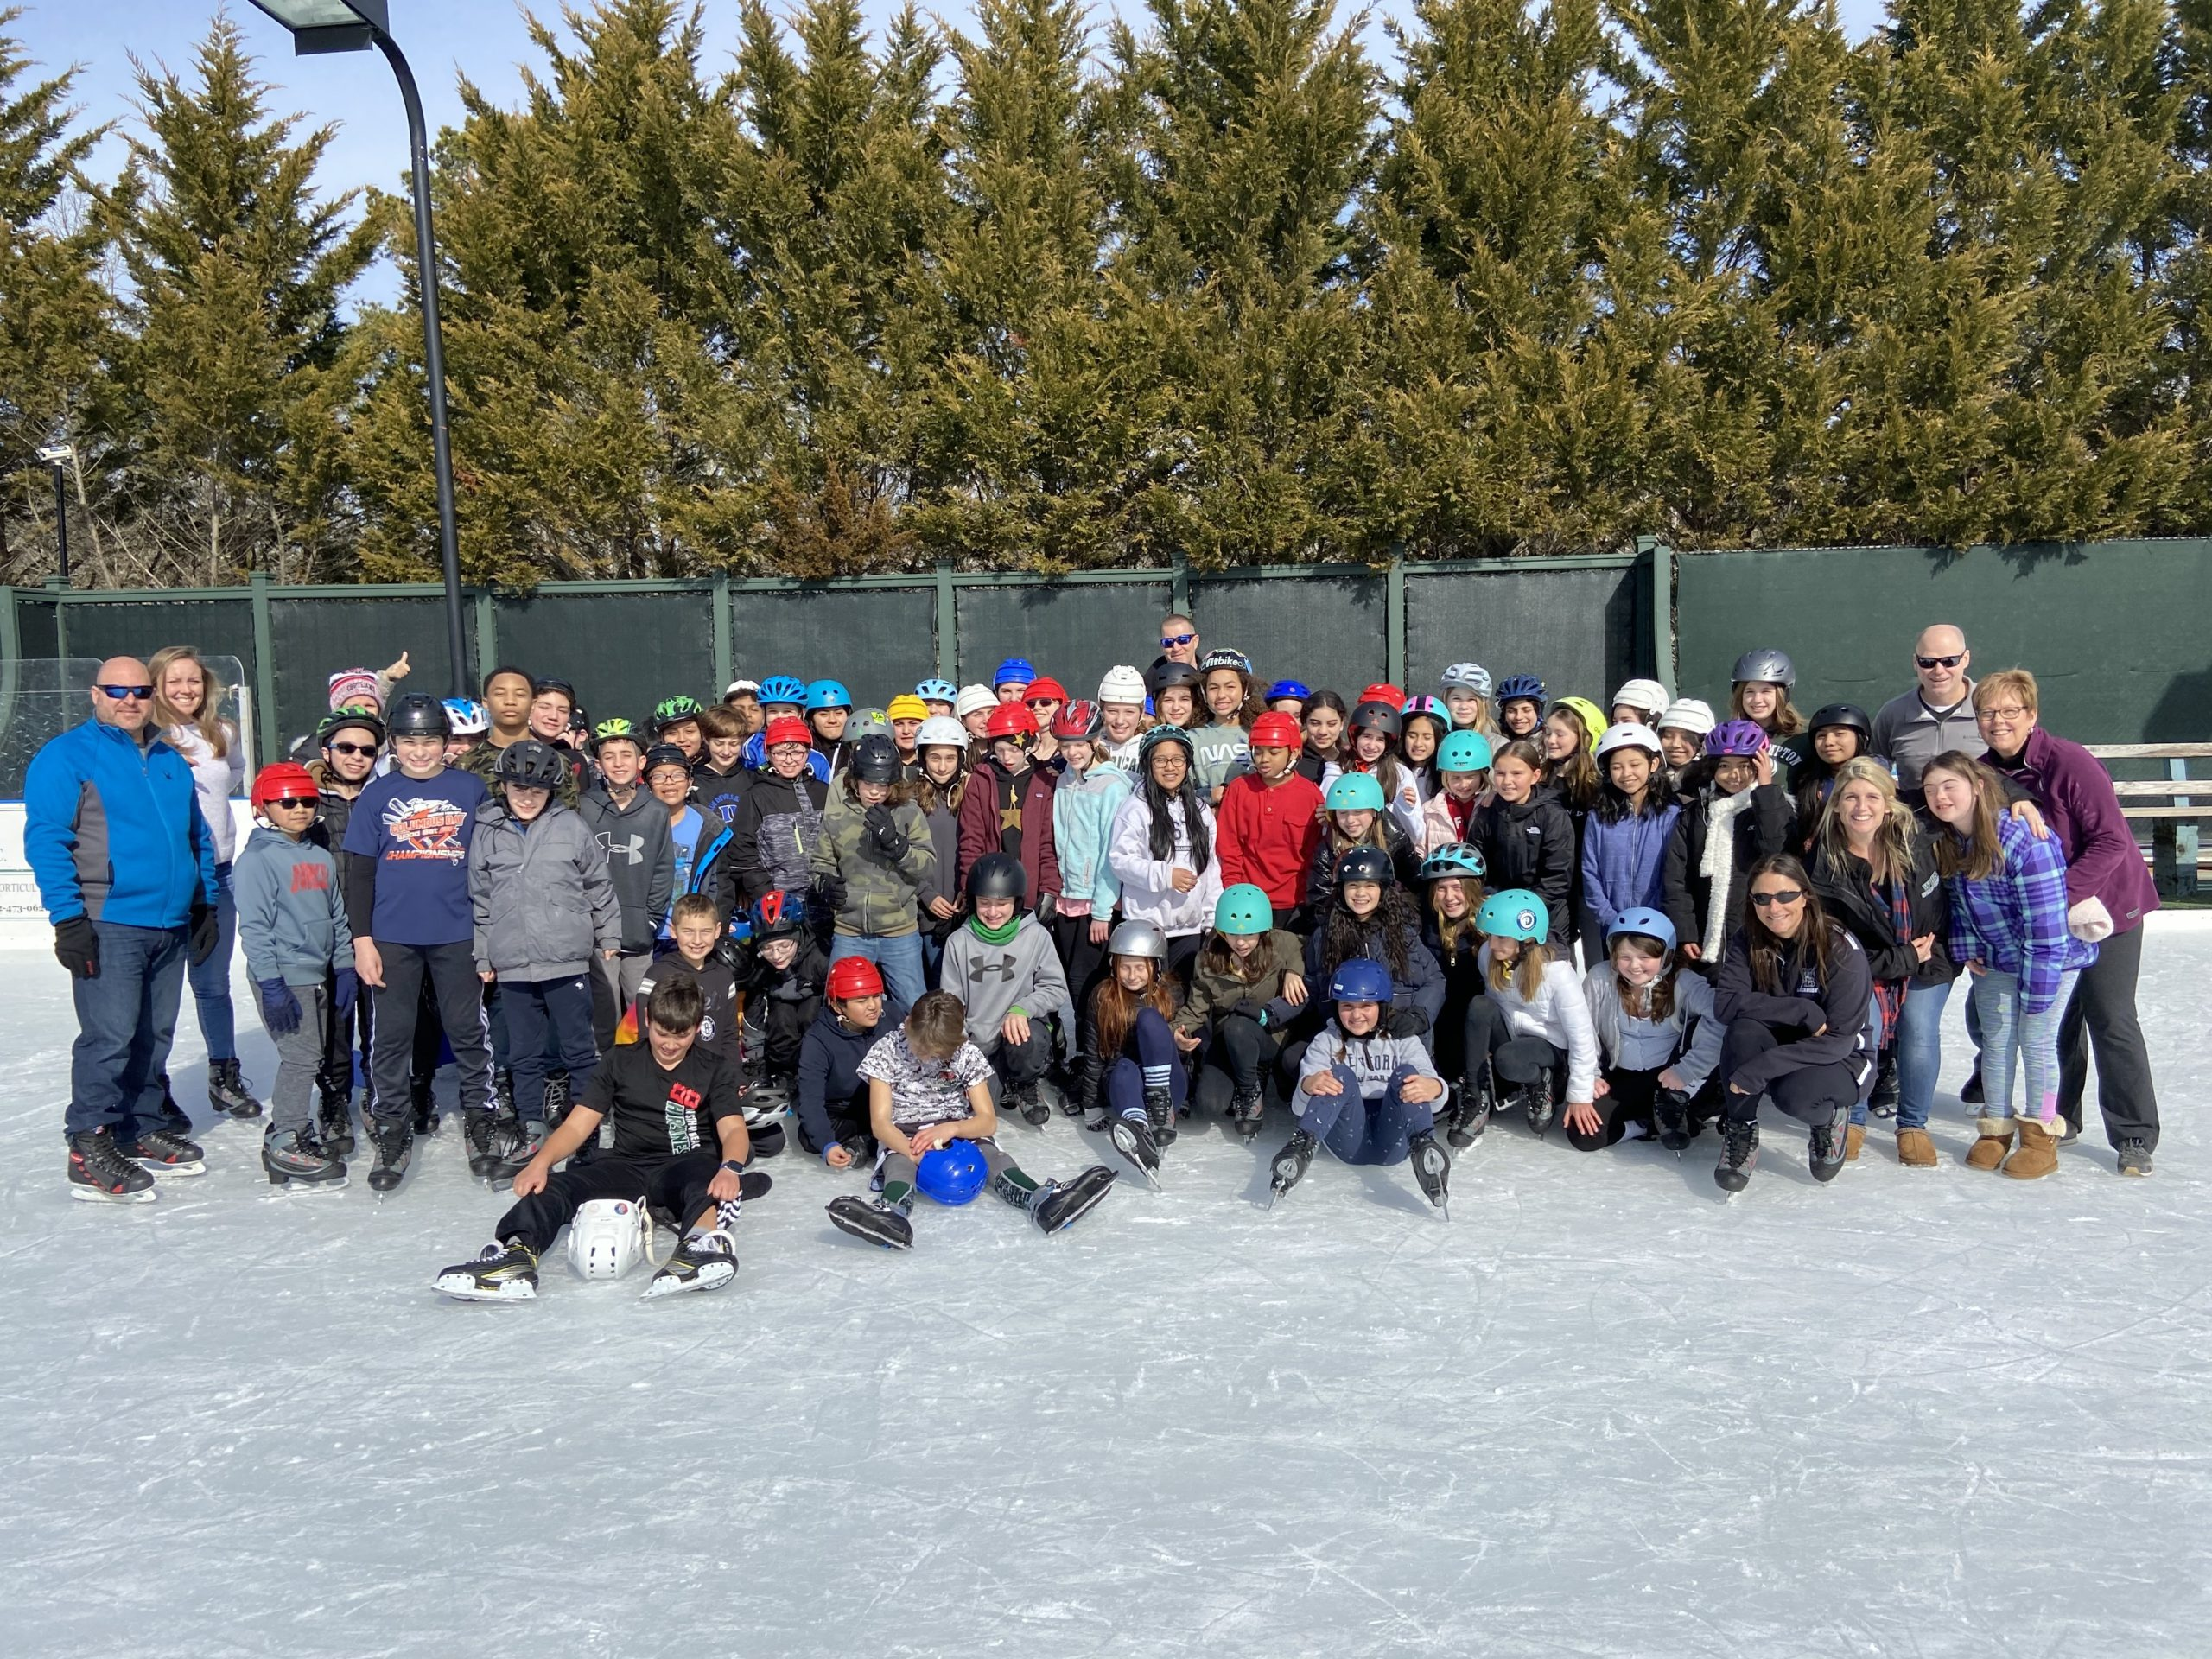 As part of their physical education class, Westhampton Beach Middle School sixth graders enjoyed a day of outdoor ice skating at Buckskill Winter Club in East Hampton on February 12. For many students, it was the first time the had skated.